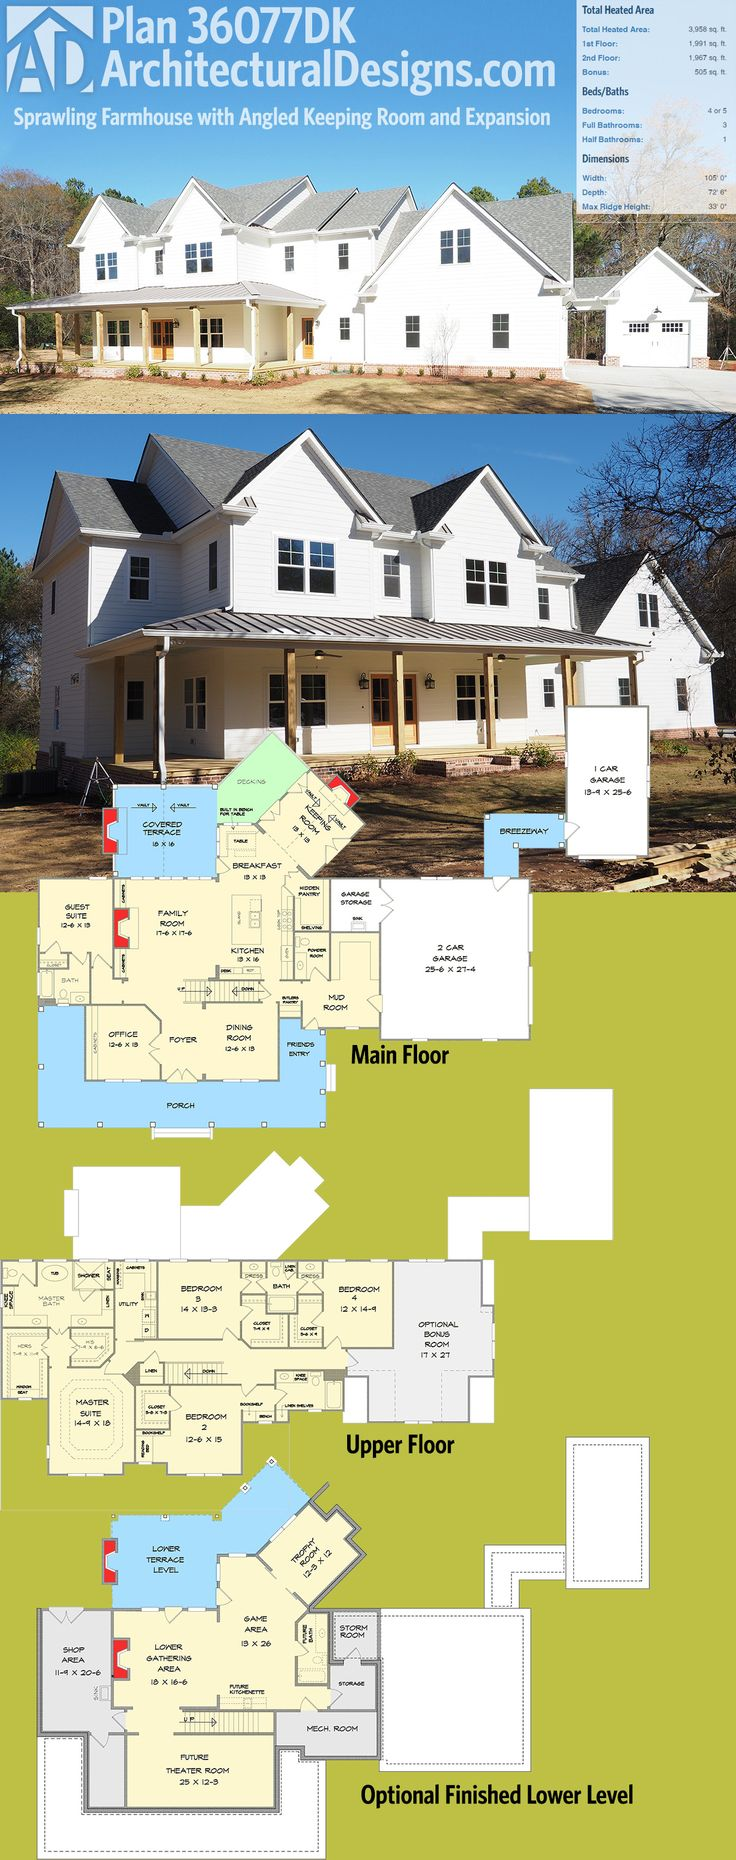 best 25 open floor ideas on pinterest open floor plans open architectural designs house plan 36077dk is a sprawling farmhouse plan with an angled keeping room and